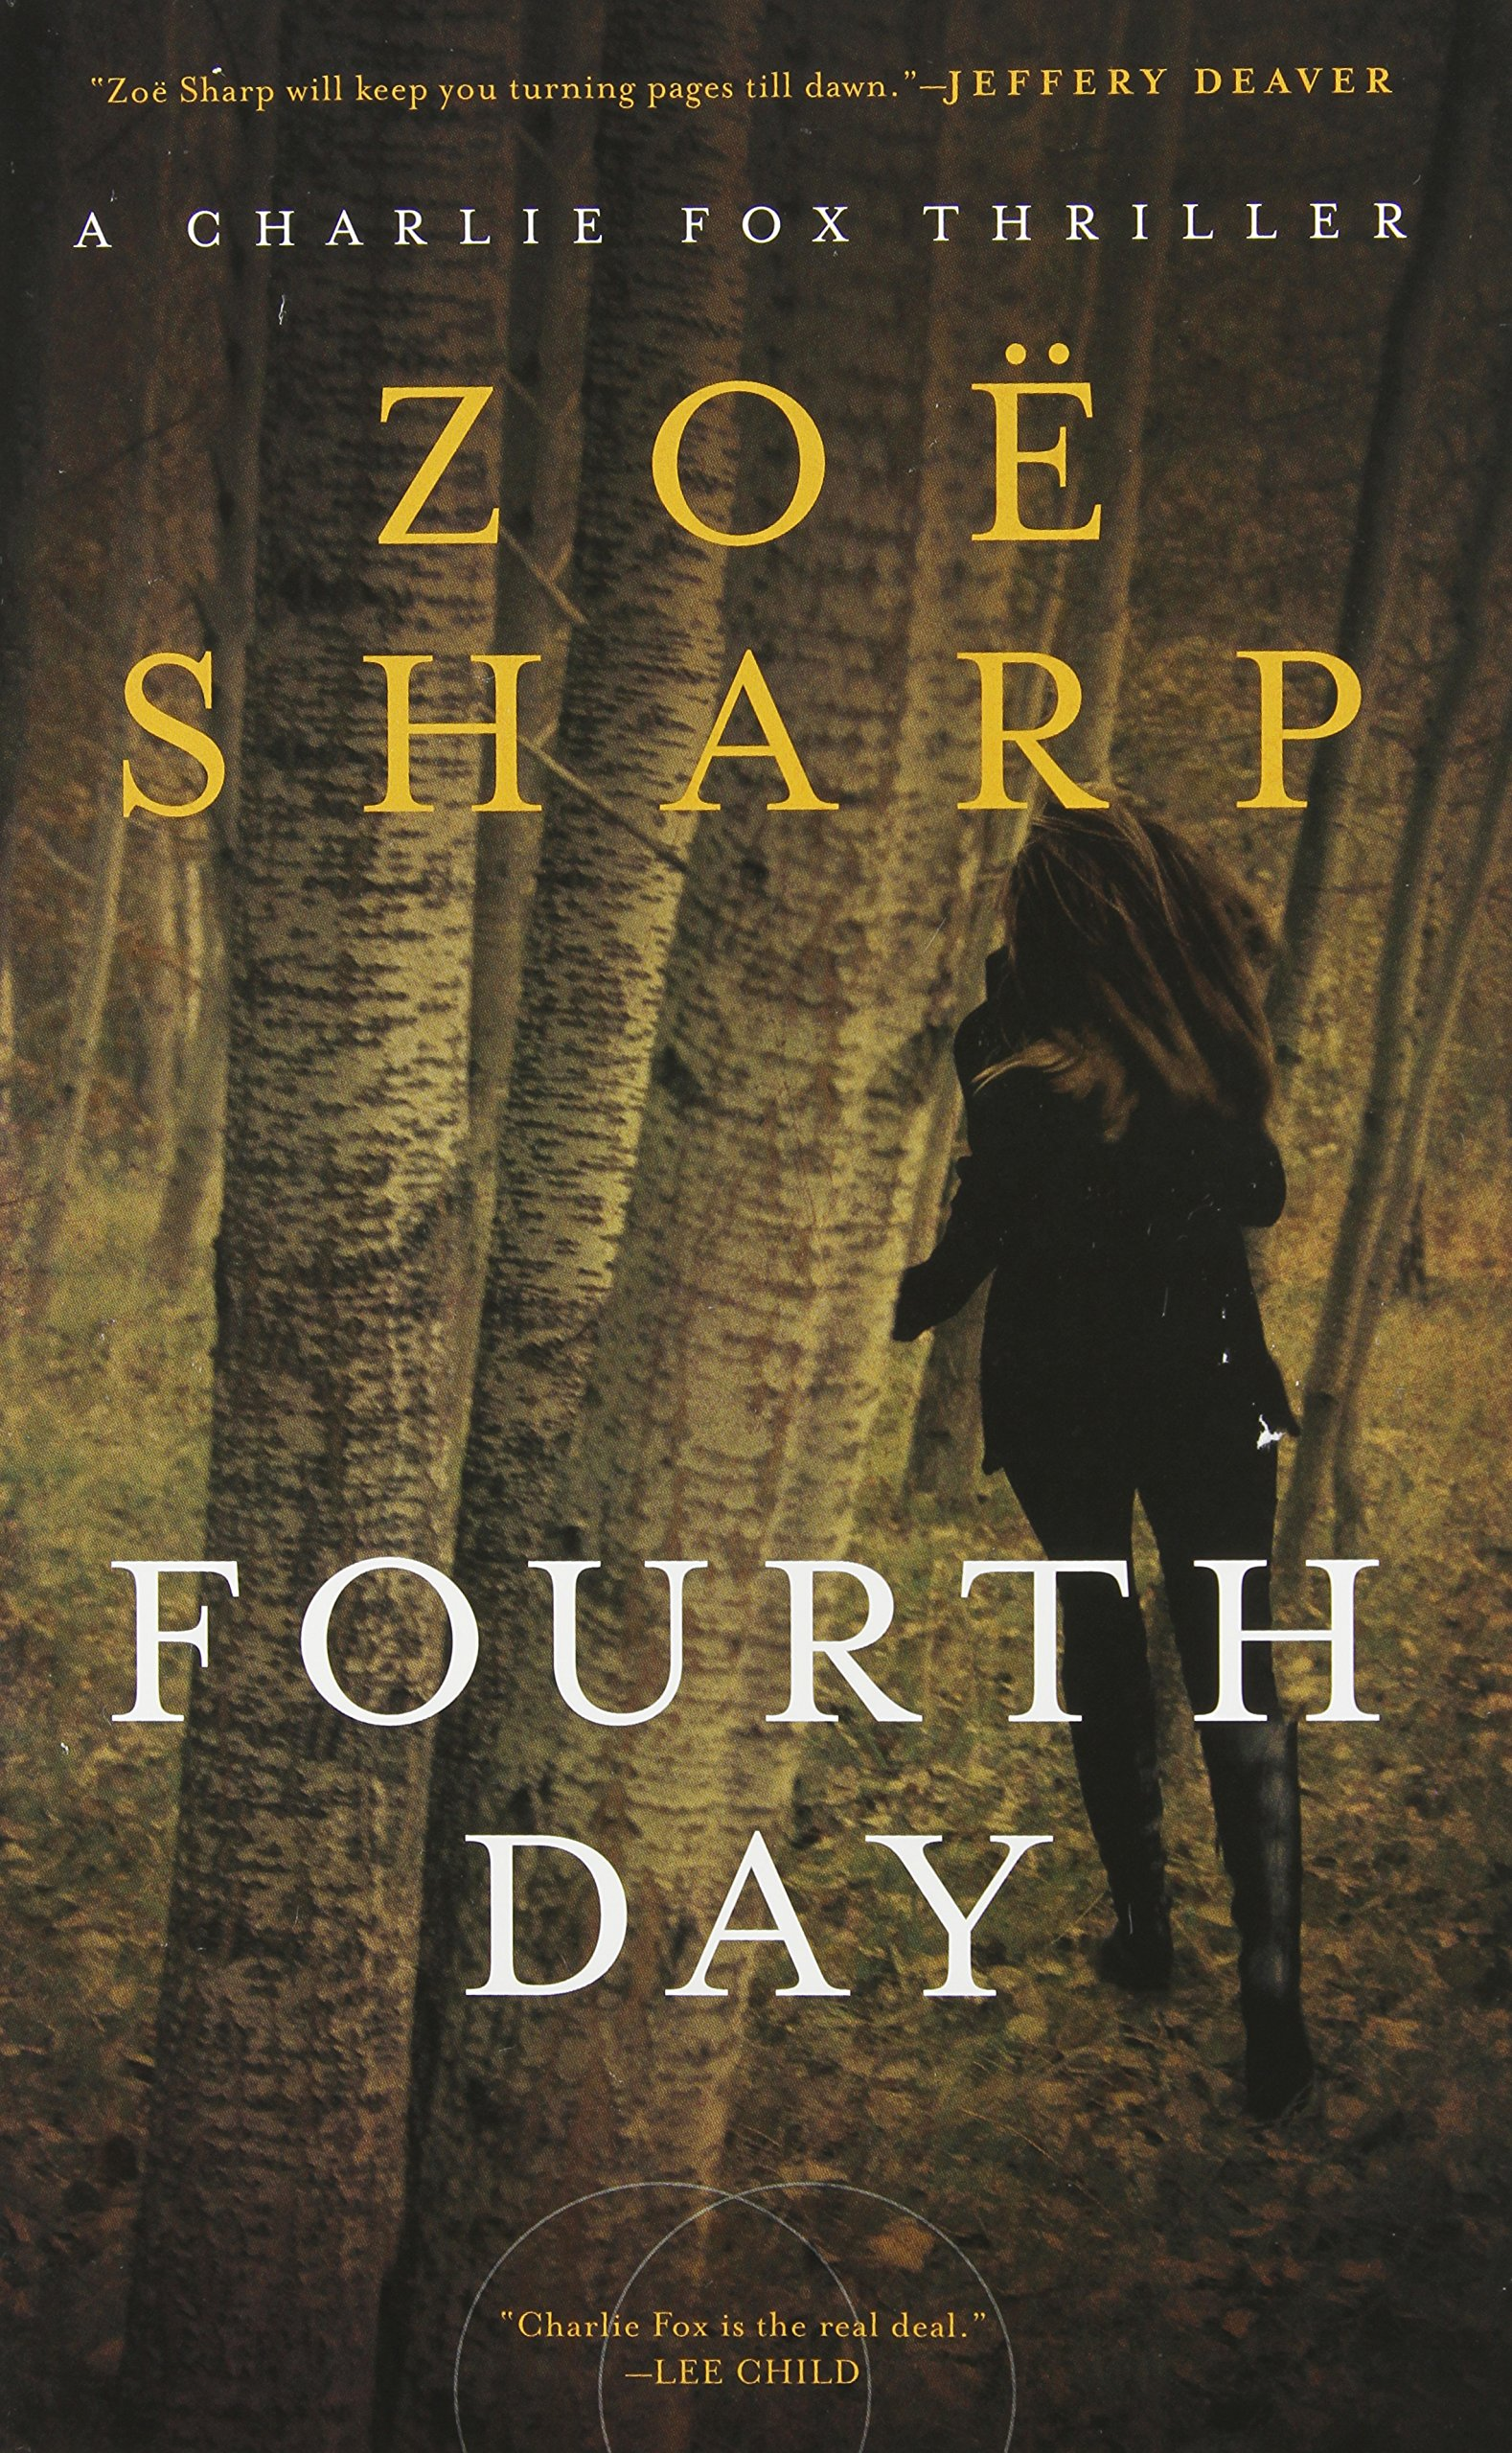 Book Cover of Fourth Day